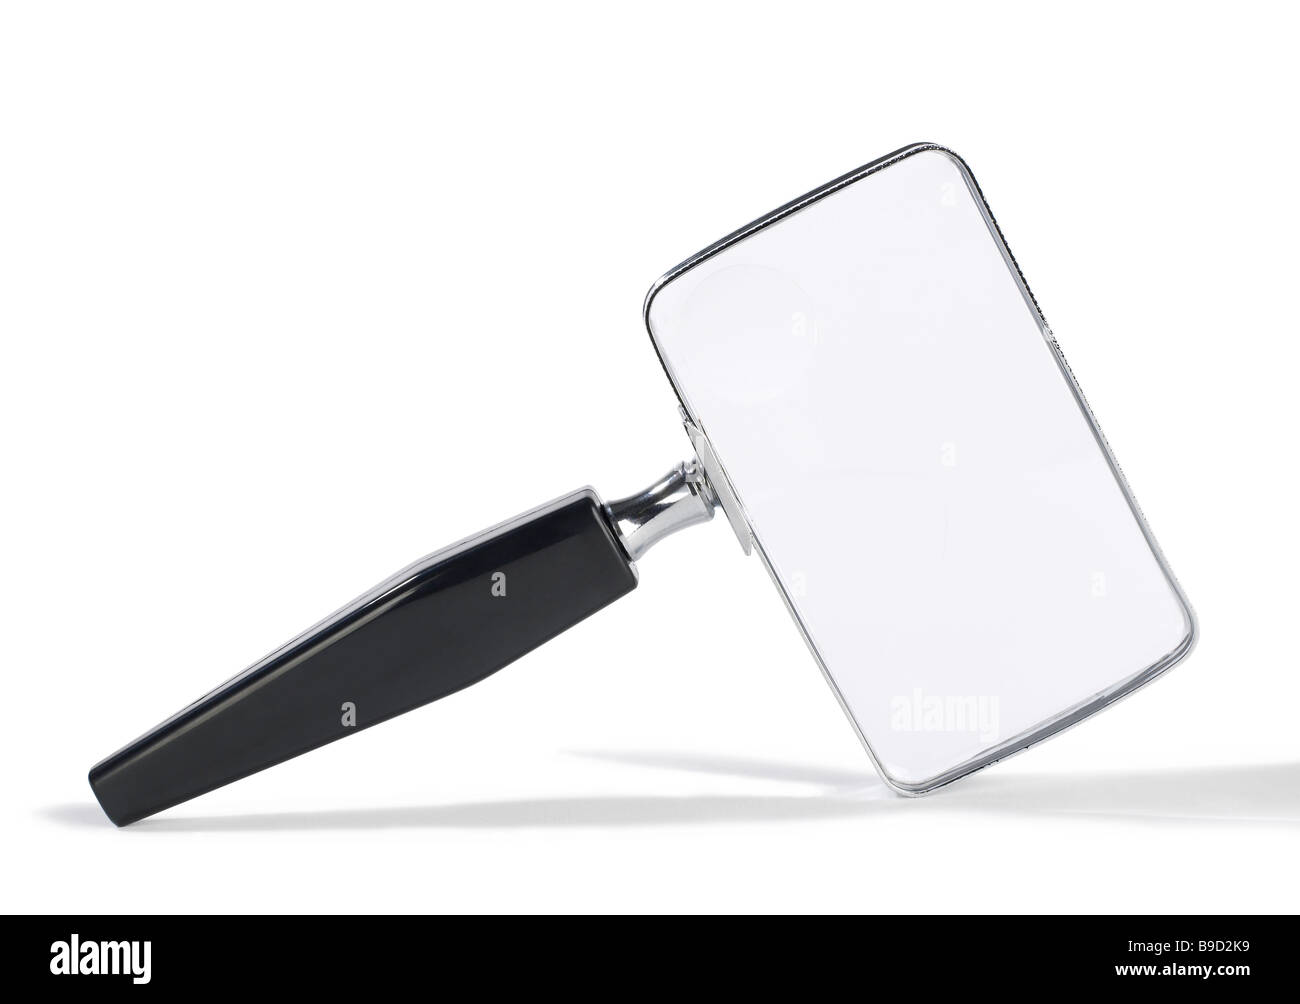 Magnify glass with black handle - Stock Image